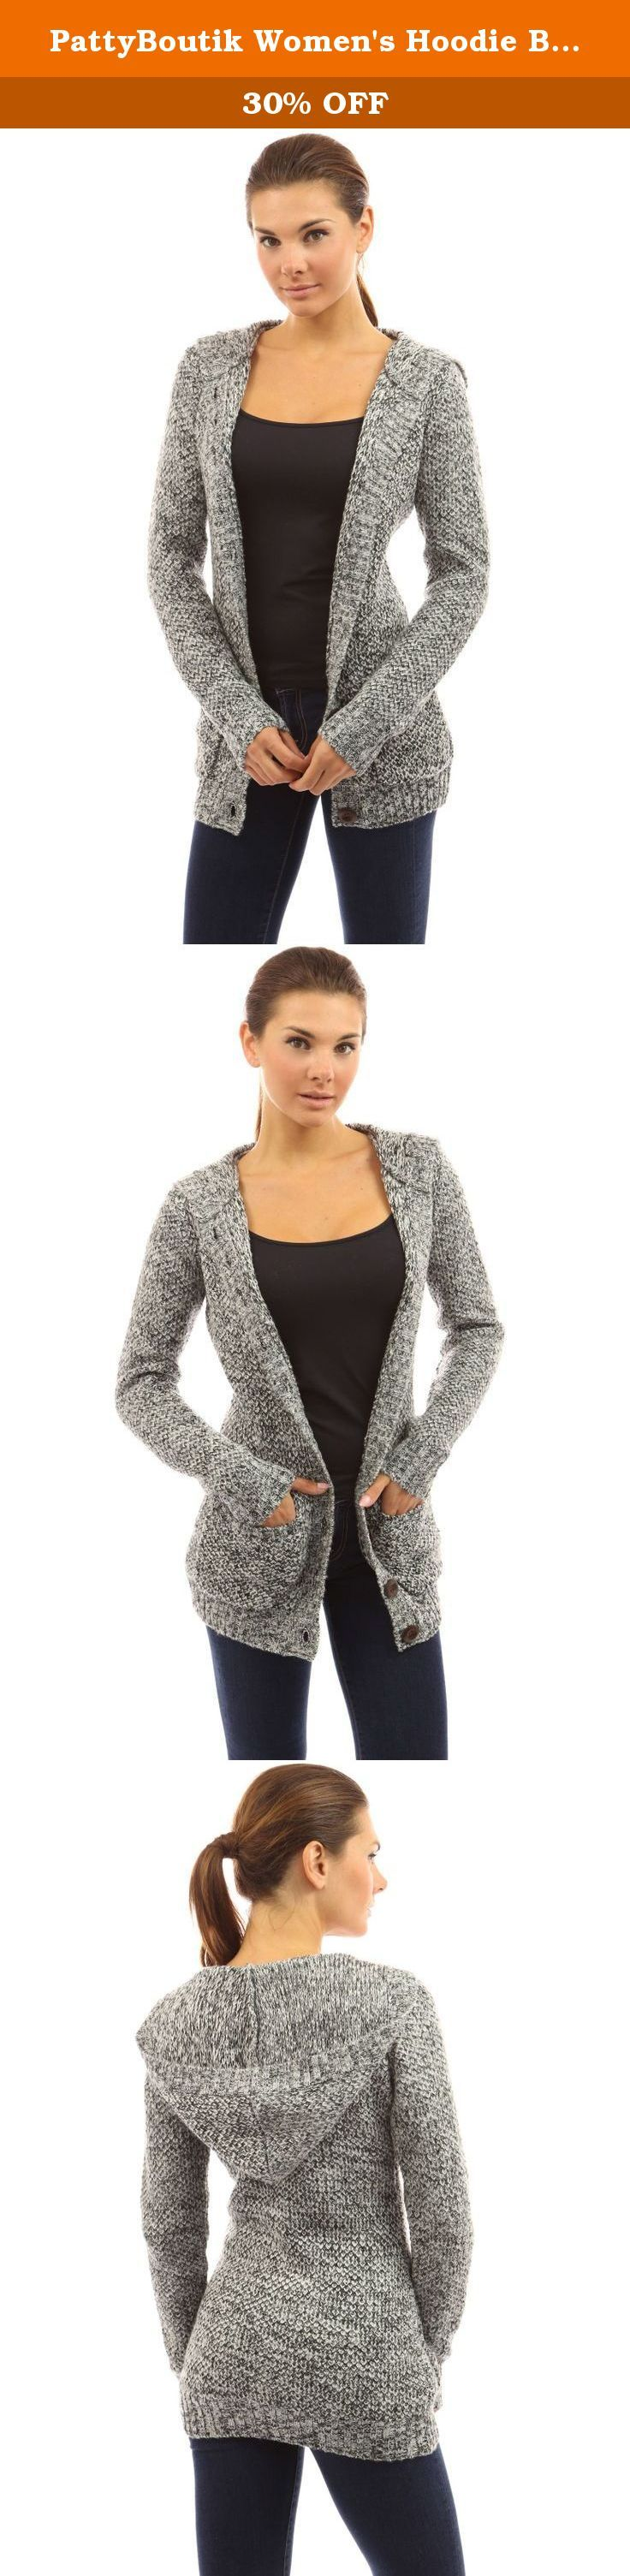 PattyBoutik Women's Hoodie Button Up Marled Knit Cardigan (Black and White M). PattyBoutik Hoodie Button Up Long Sleeve Pockets Marled Knit Sweater Cardigan. Model in pictures is 5 feet 8 inches (173cm) tall wearing size S.